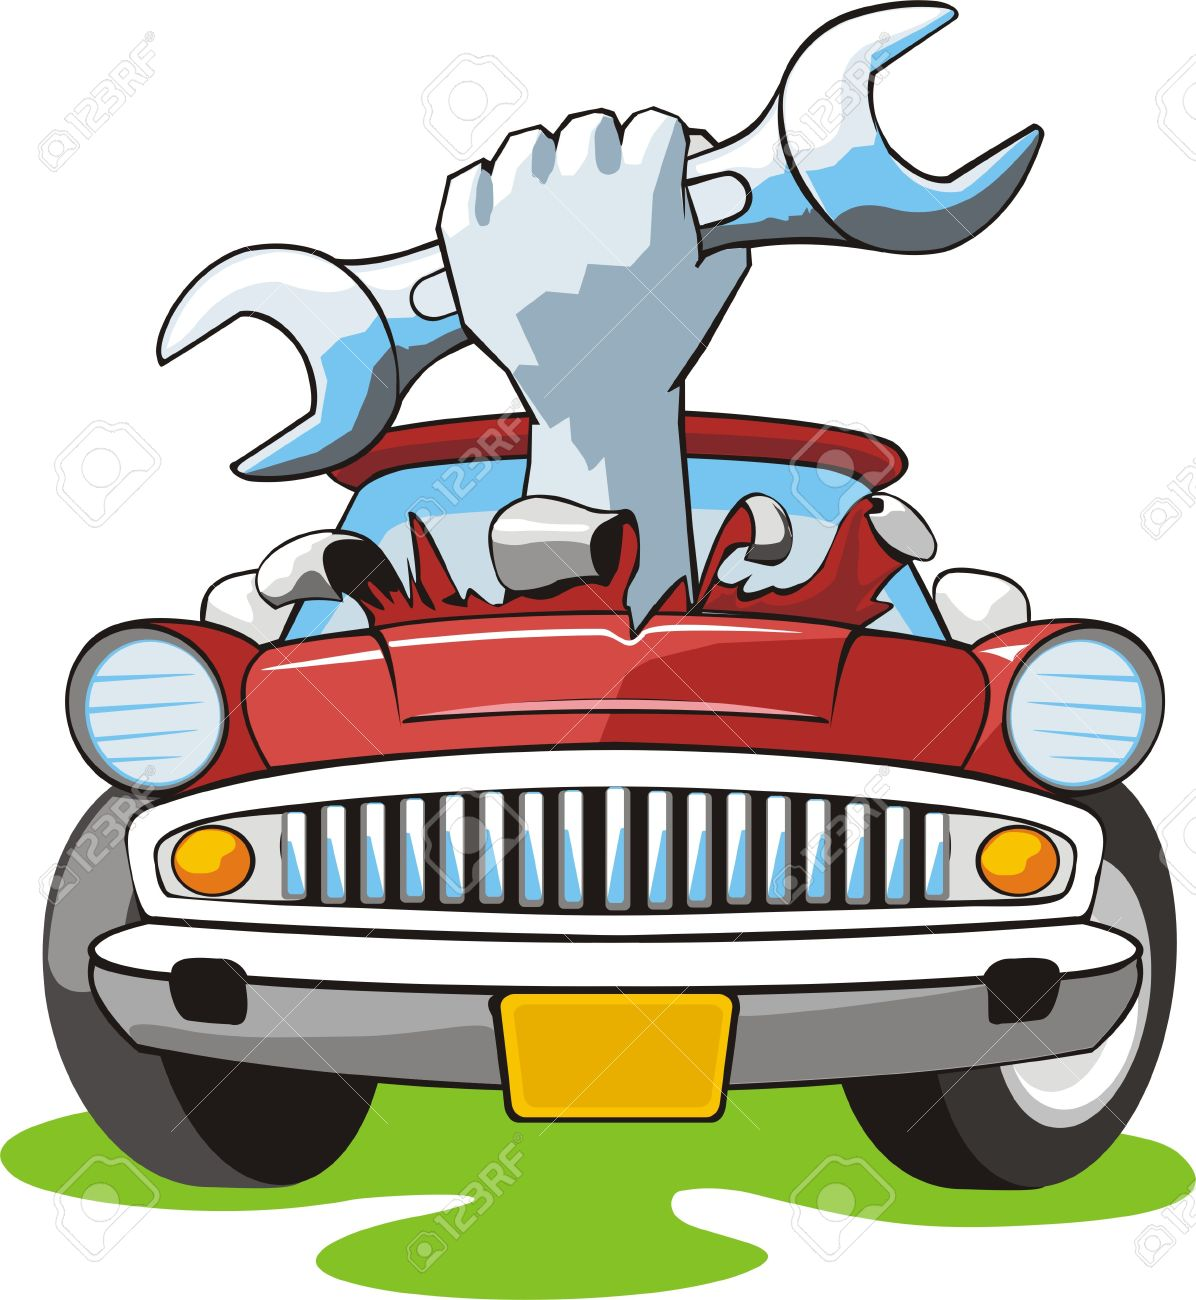 Clipart cars tool. Mechanic images free download